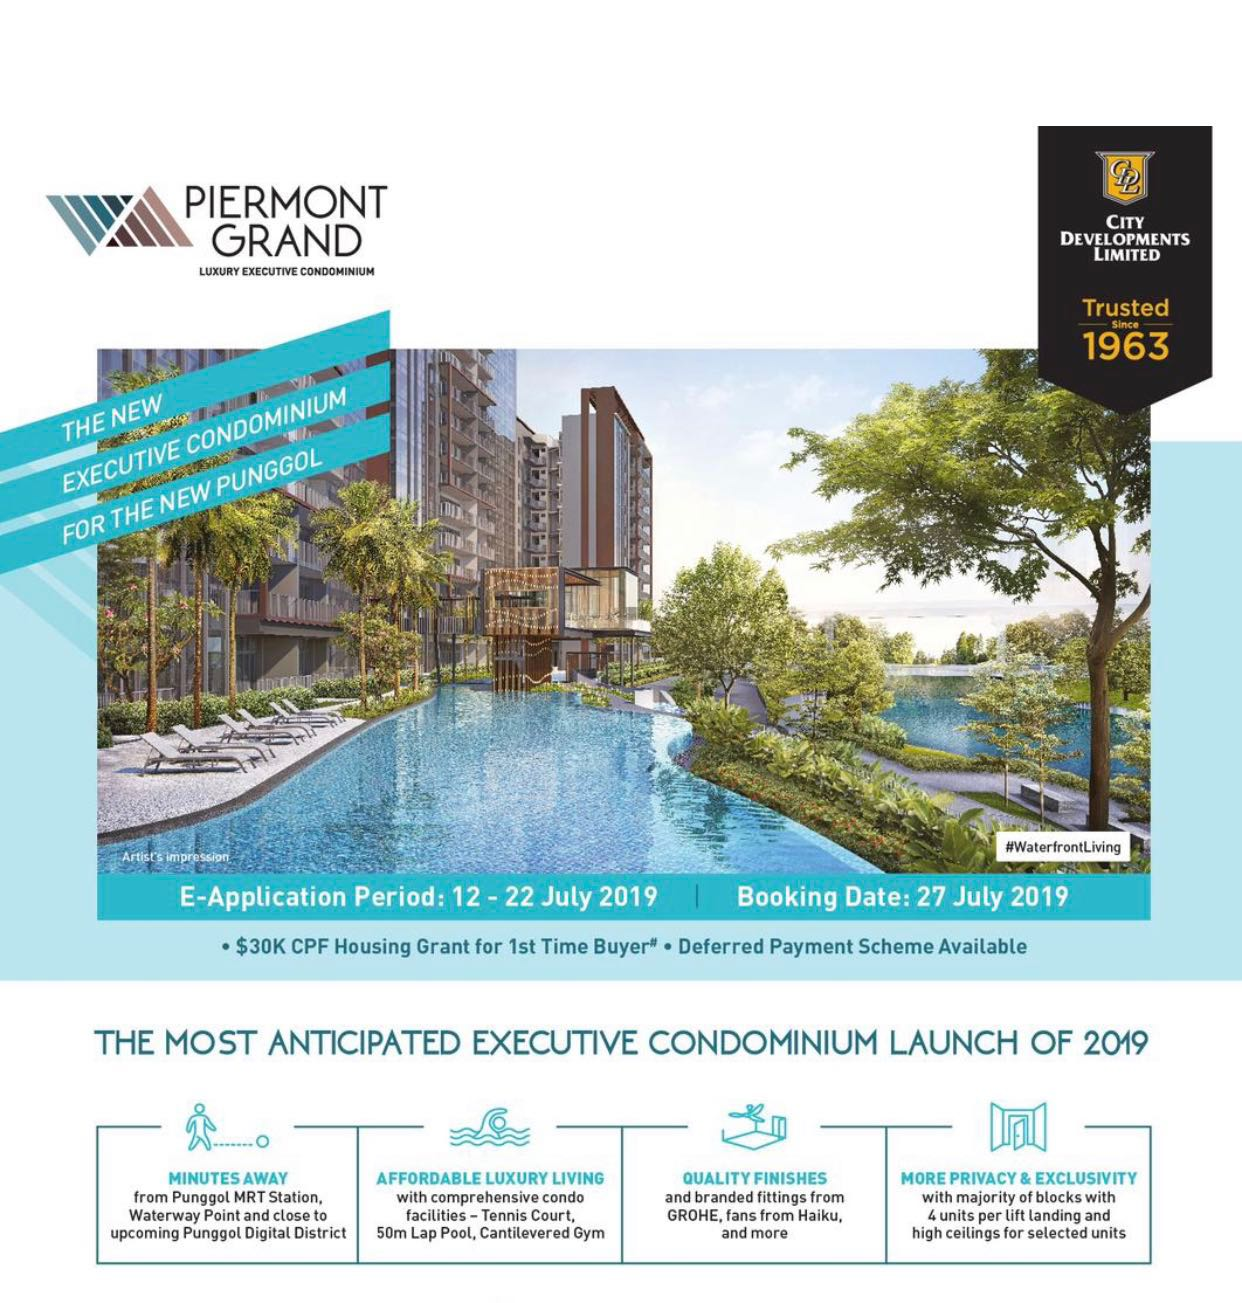 Piermont Grand EC - The Only EC in 2019